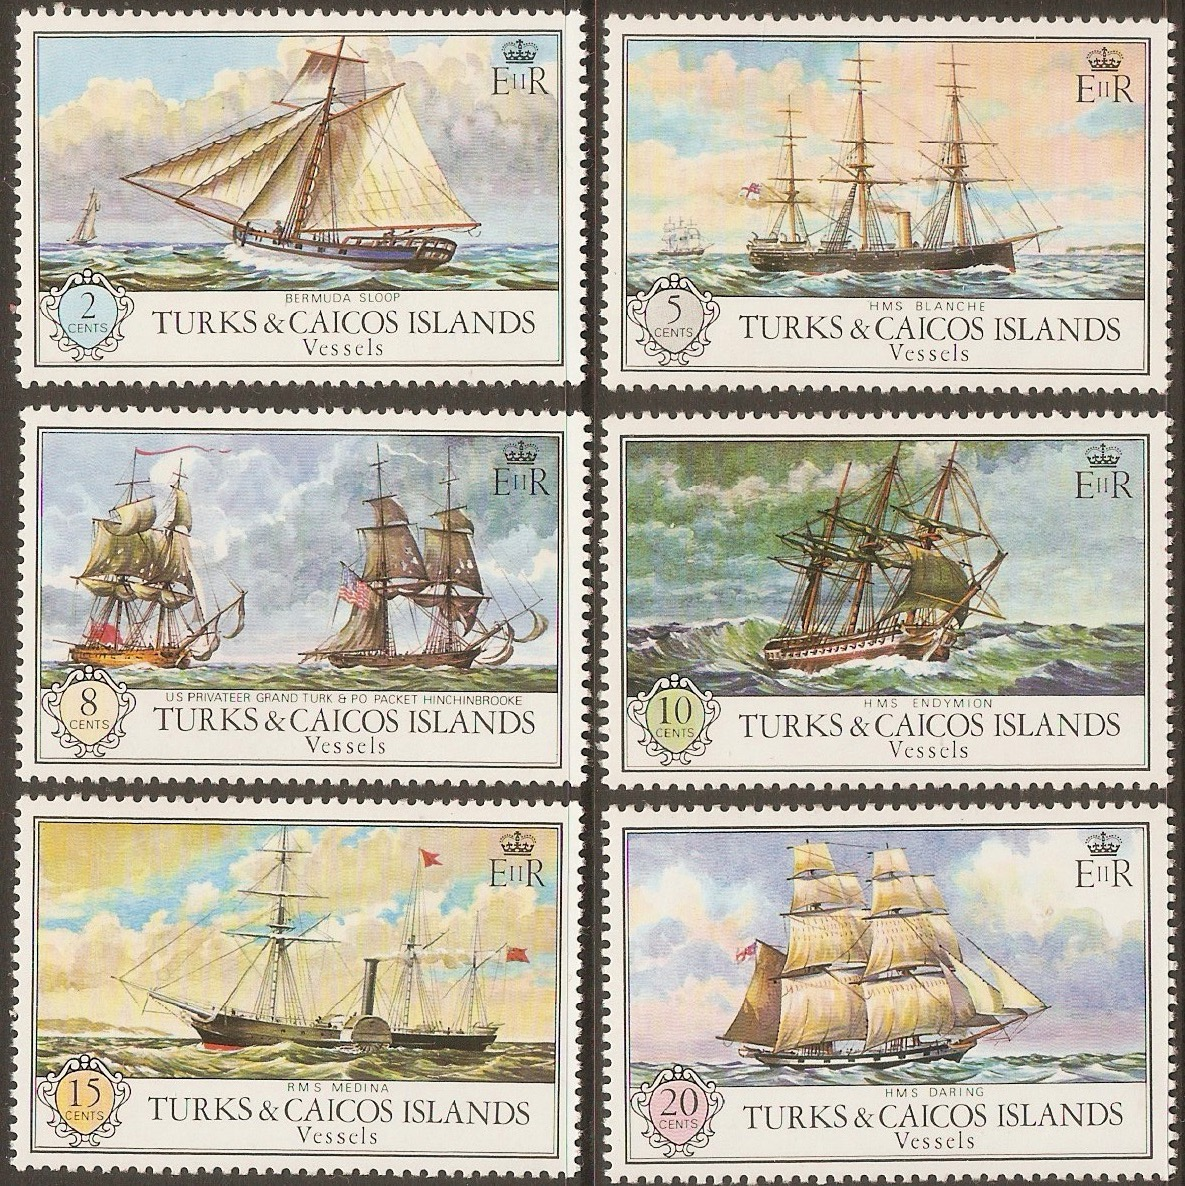 Turk and Caicos Islands 1973 Vessels set. SG396-SG401.